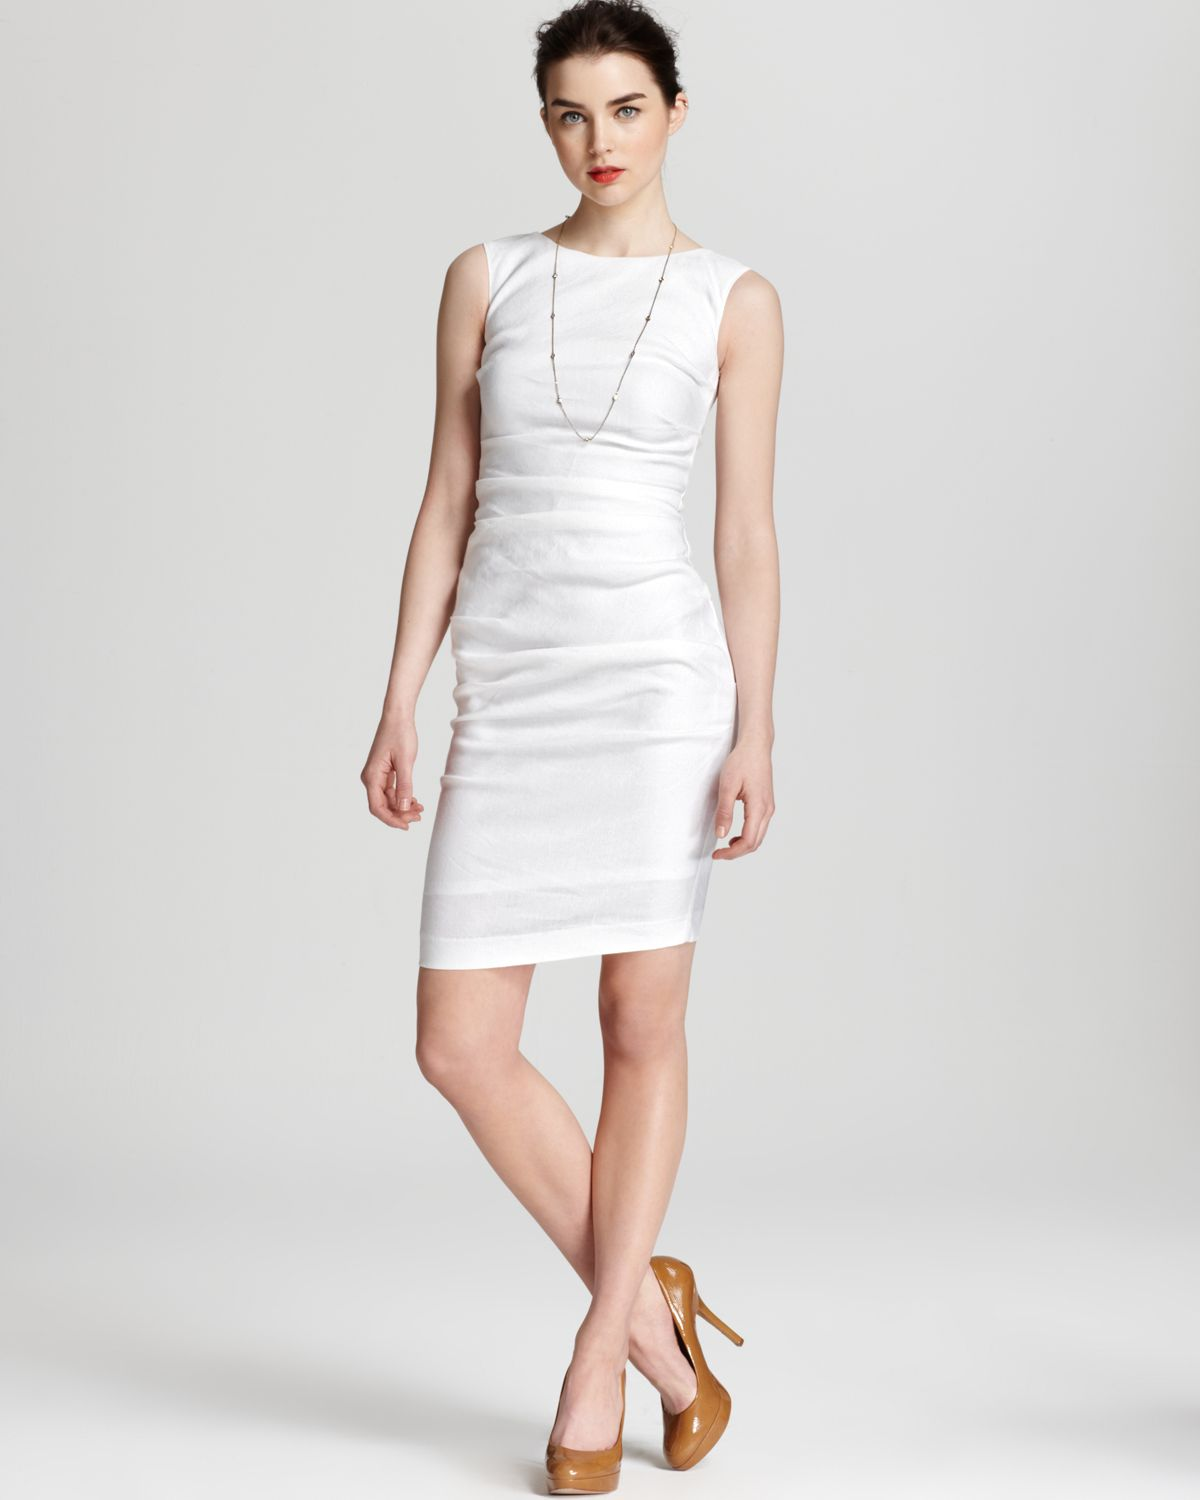 Nicole miller Tank Dress - Classic Stretch Linen in White  Lyst